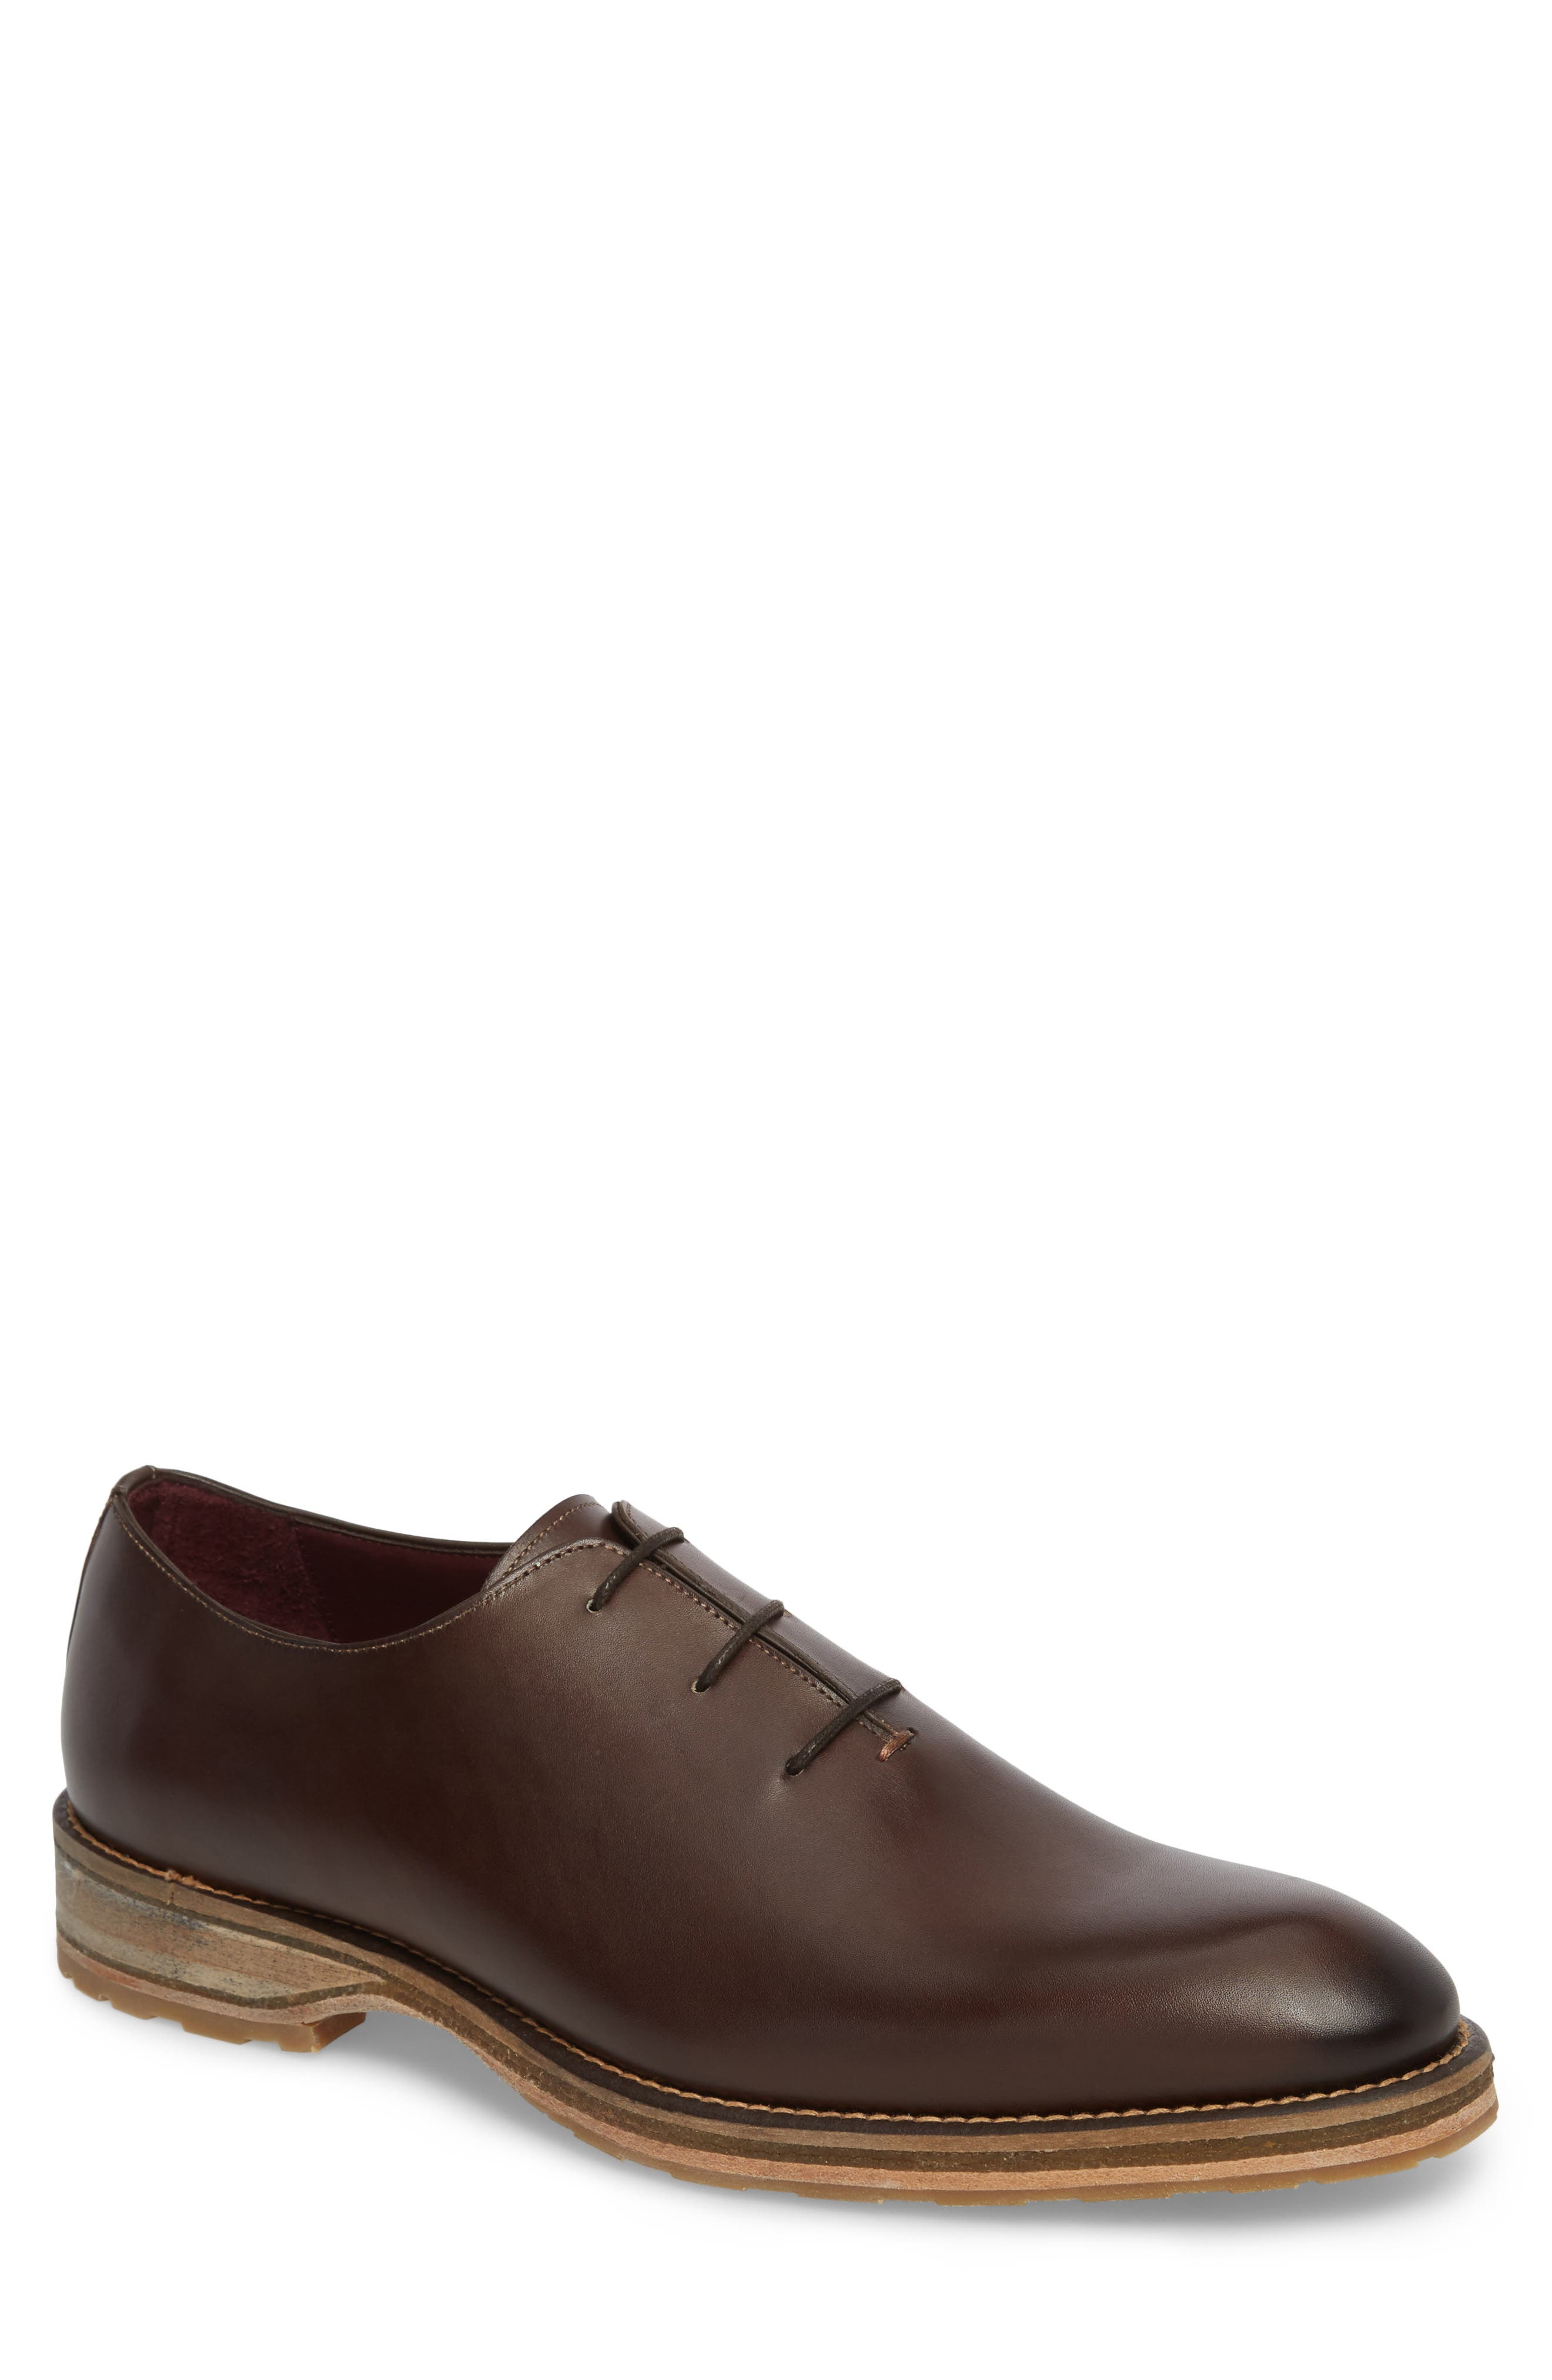 Pego Wholecut Oxford,                             Main thumbnail 1, color,                             Dark Brown Leather